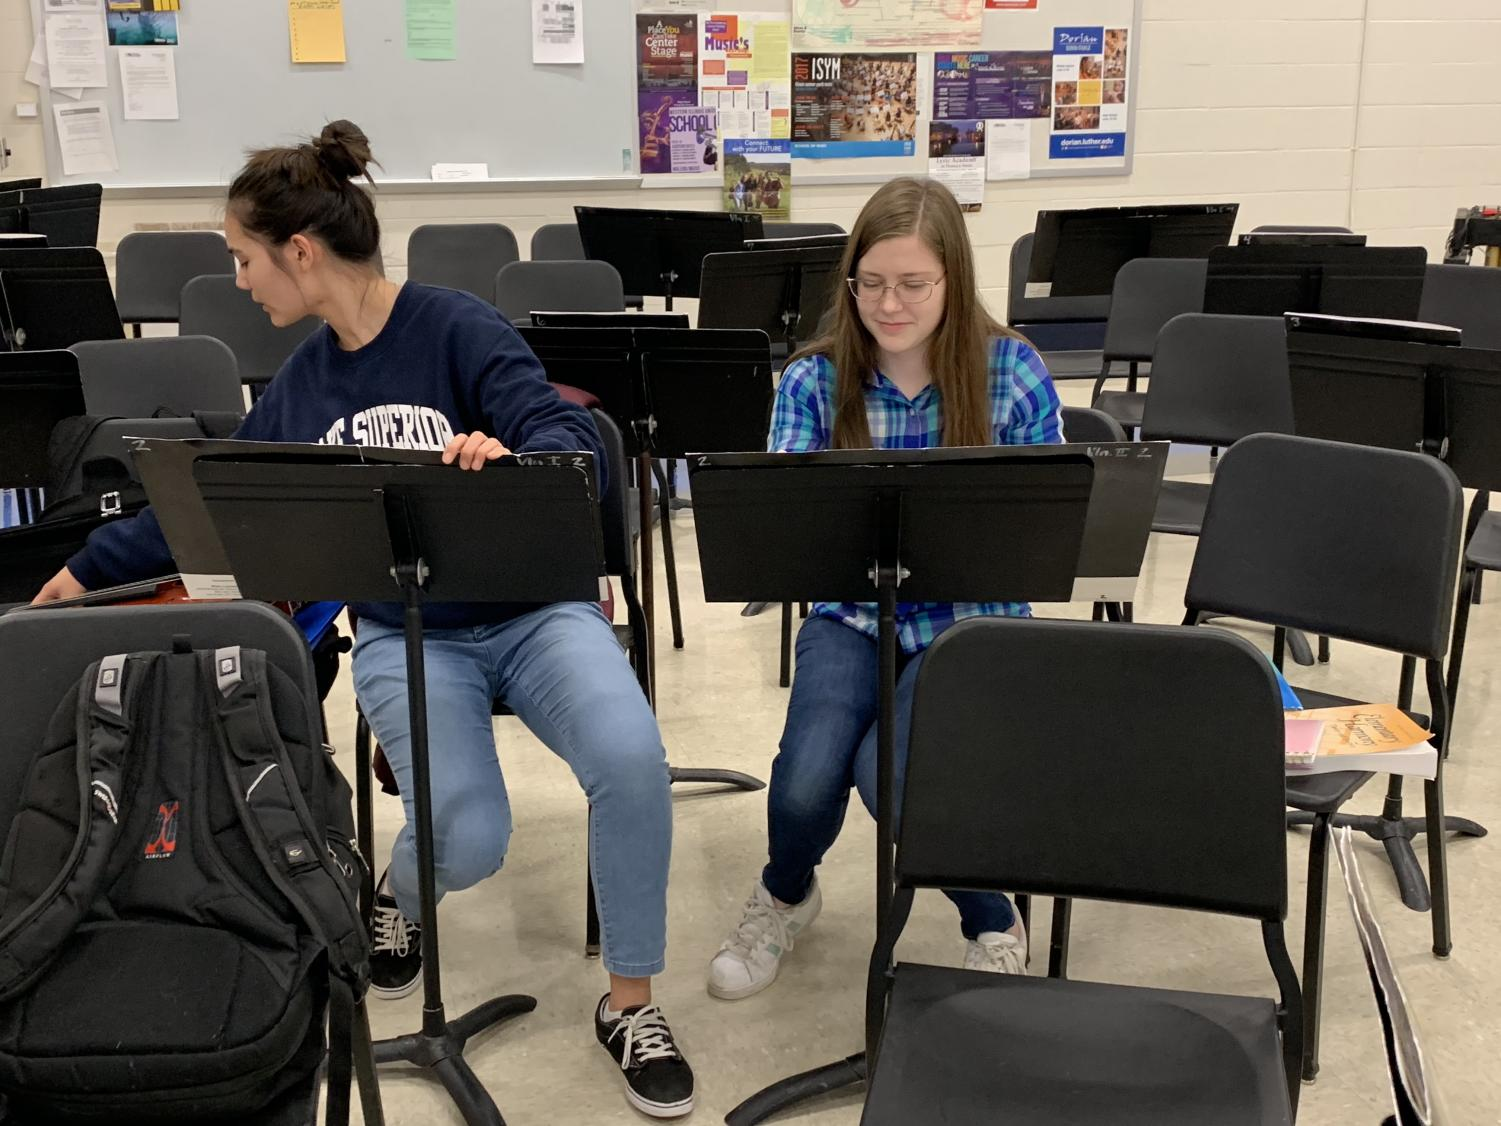 Here, PV students complete homework and participate in musical extracurriculars.